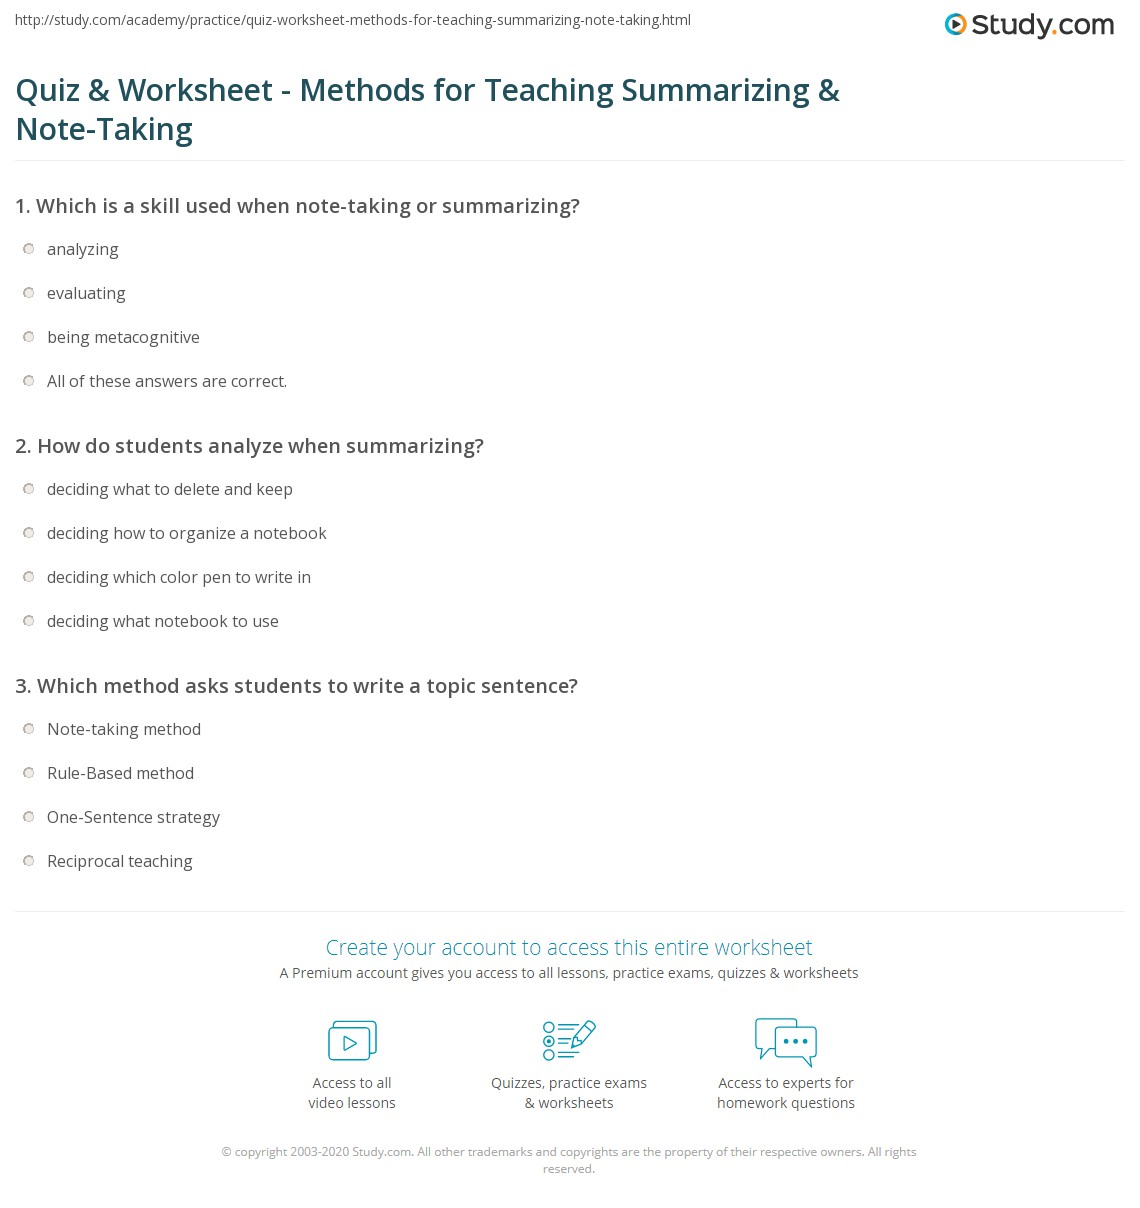 Worksheets Summarizing Worksheet quiz worksheet methods for teaching summarizing note taking print instructional strategies worksheet